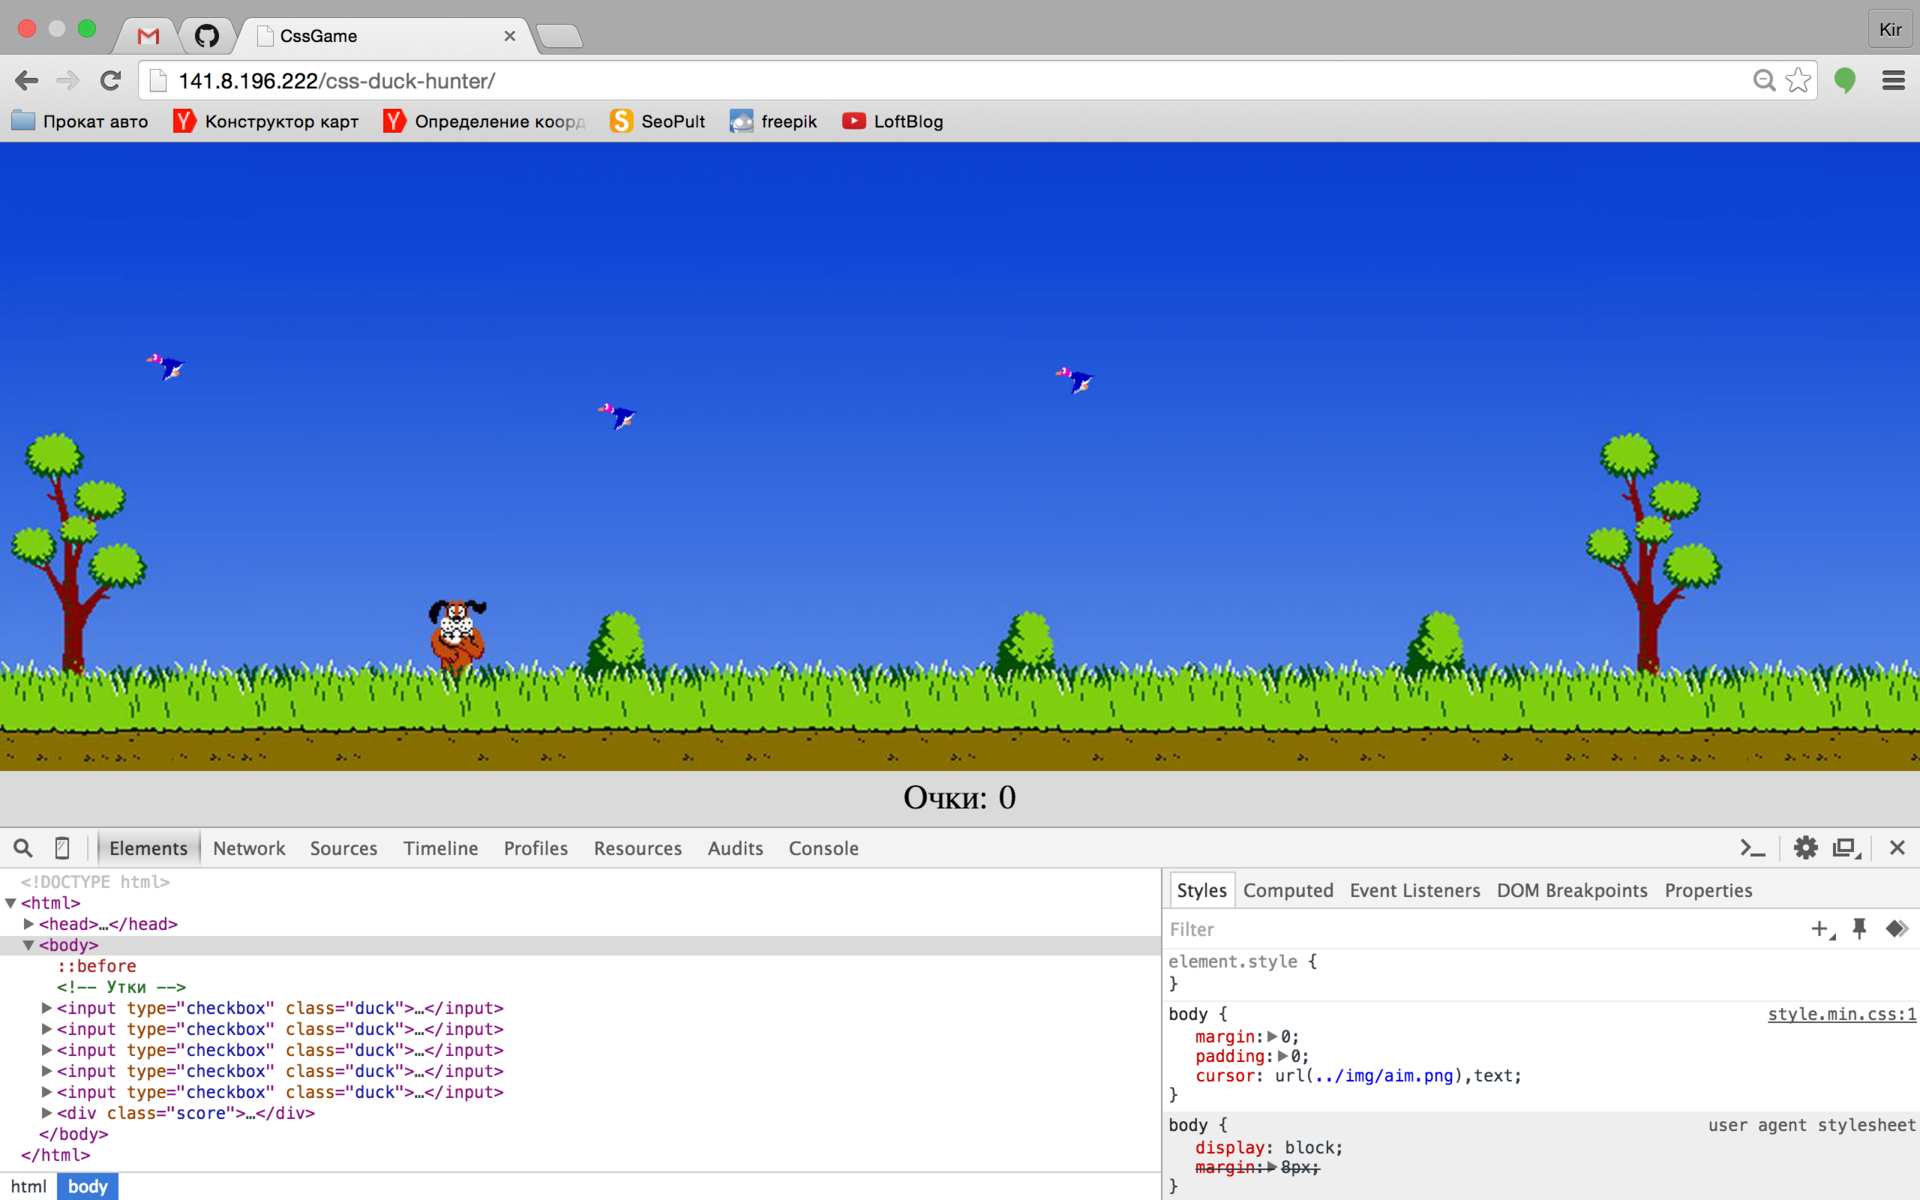 Game on naked HTML/CSS